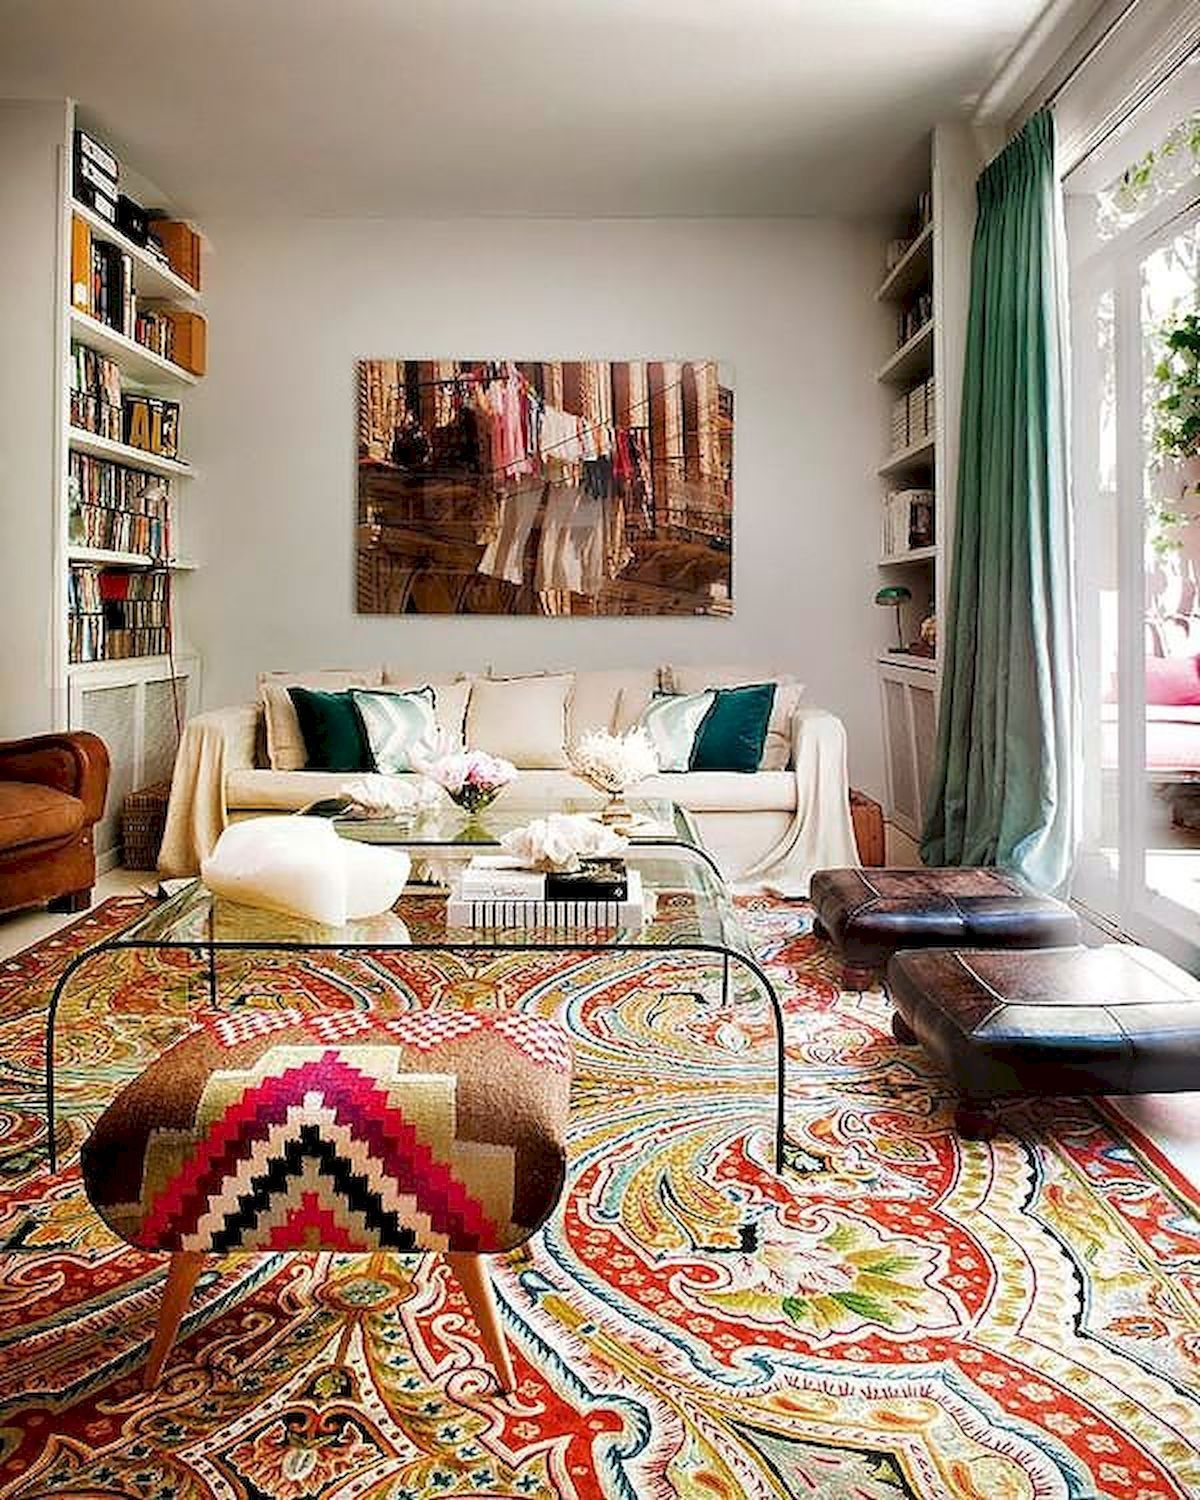 Nice 100 eclectic and bohemian living room ideas decorations and remodel https worldecor